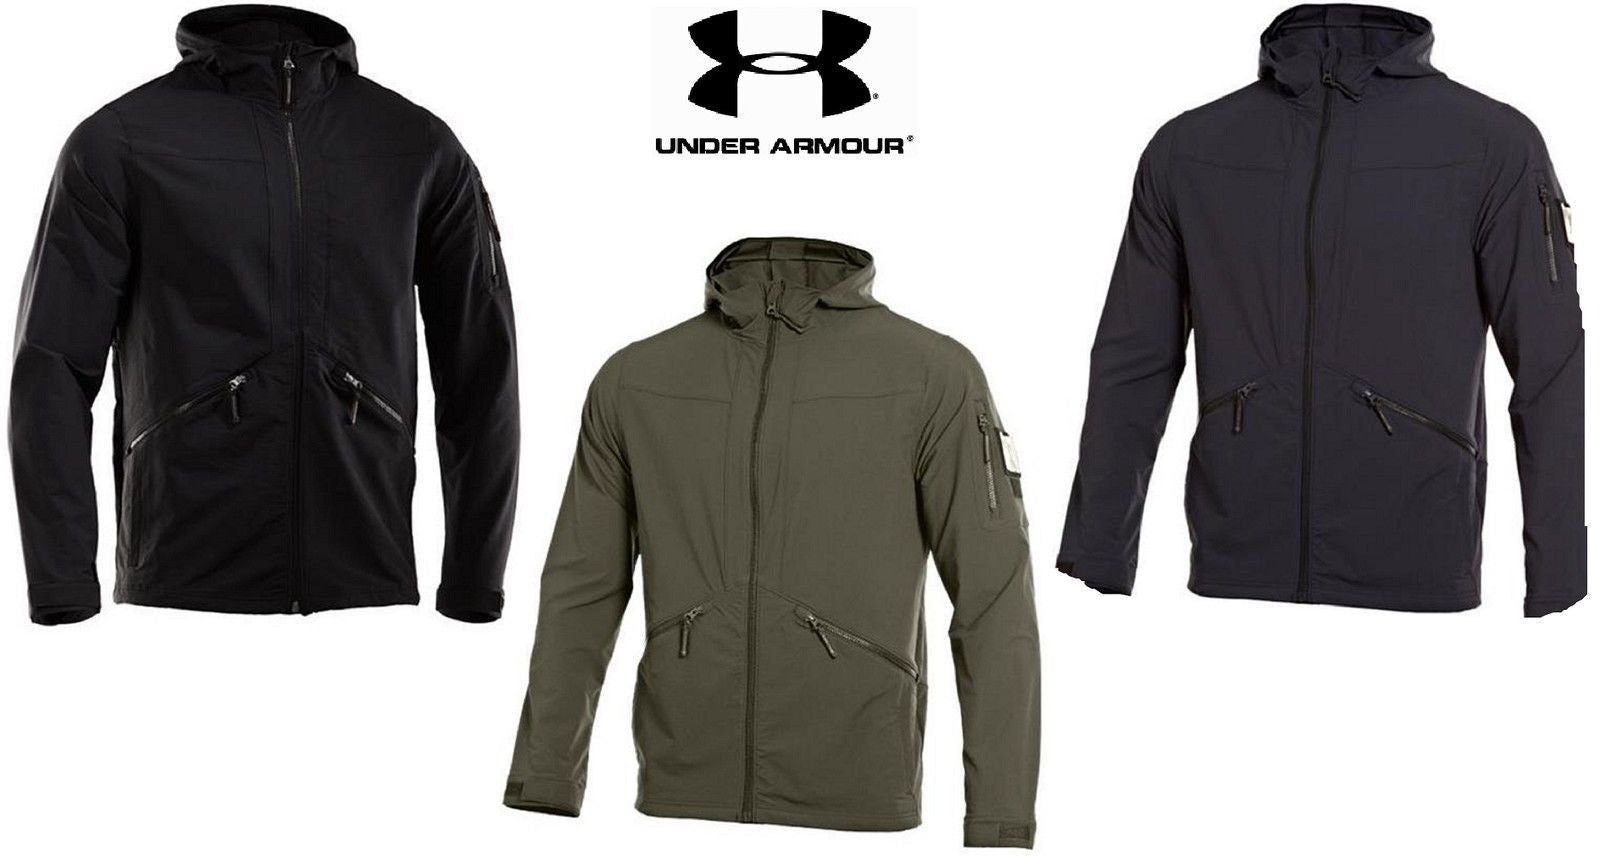 ee1702144 Under Armour Tactical Softshell Jacket 2.0 - Mens Lightweight Field ...